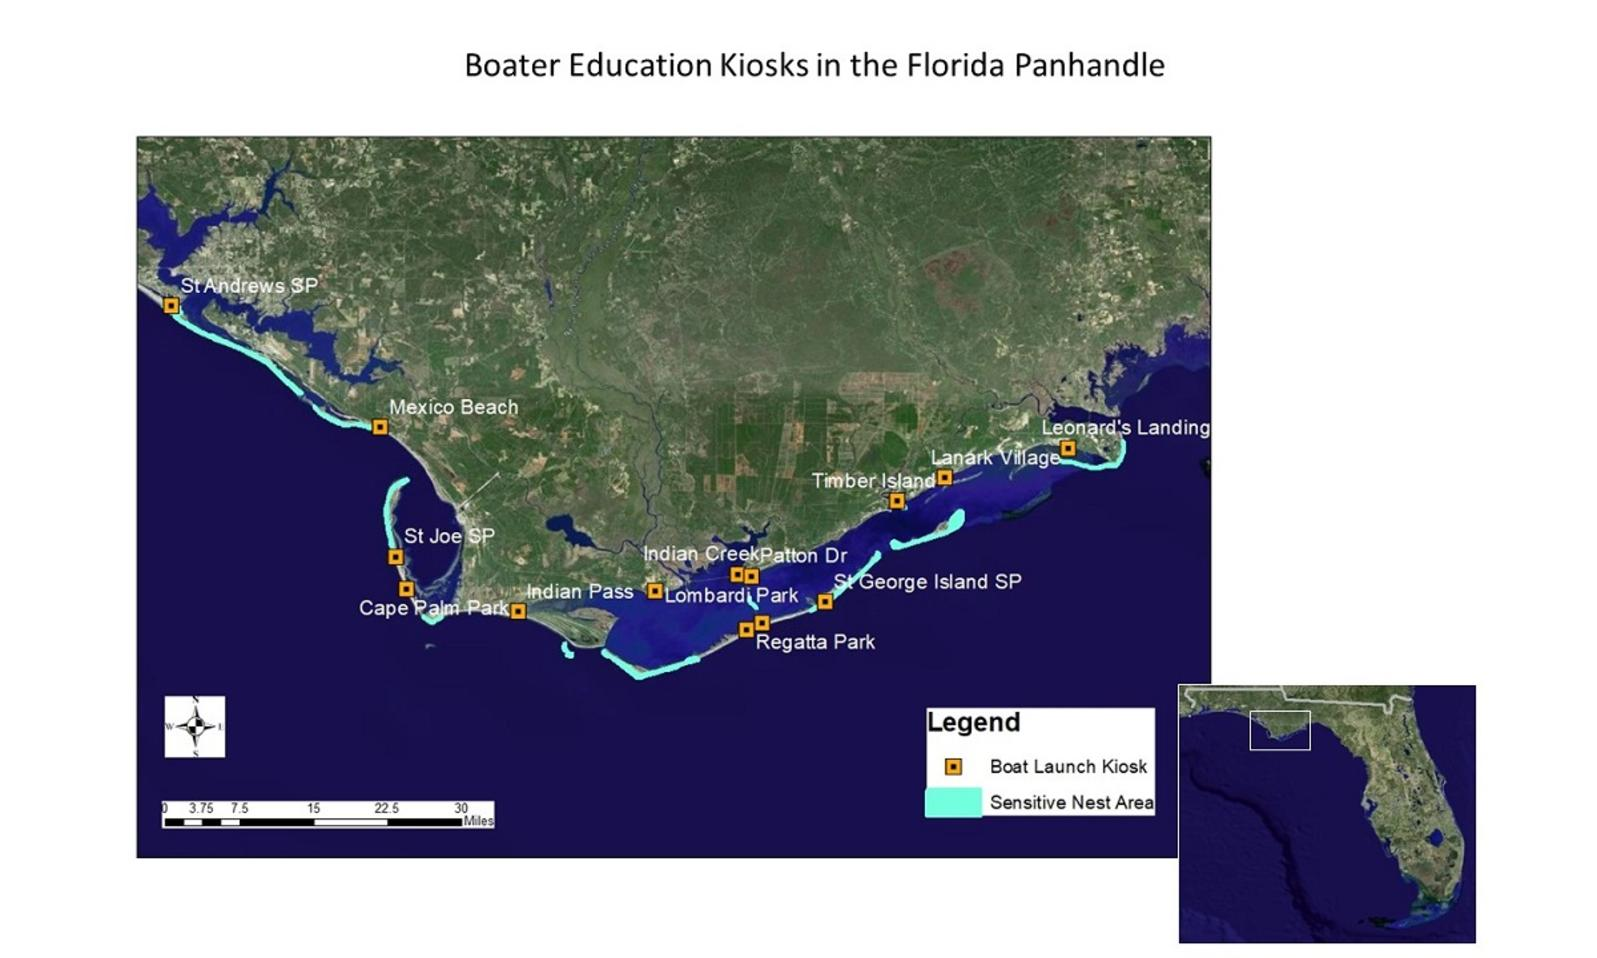 Boater Education Kiosks